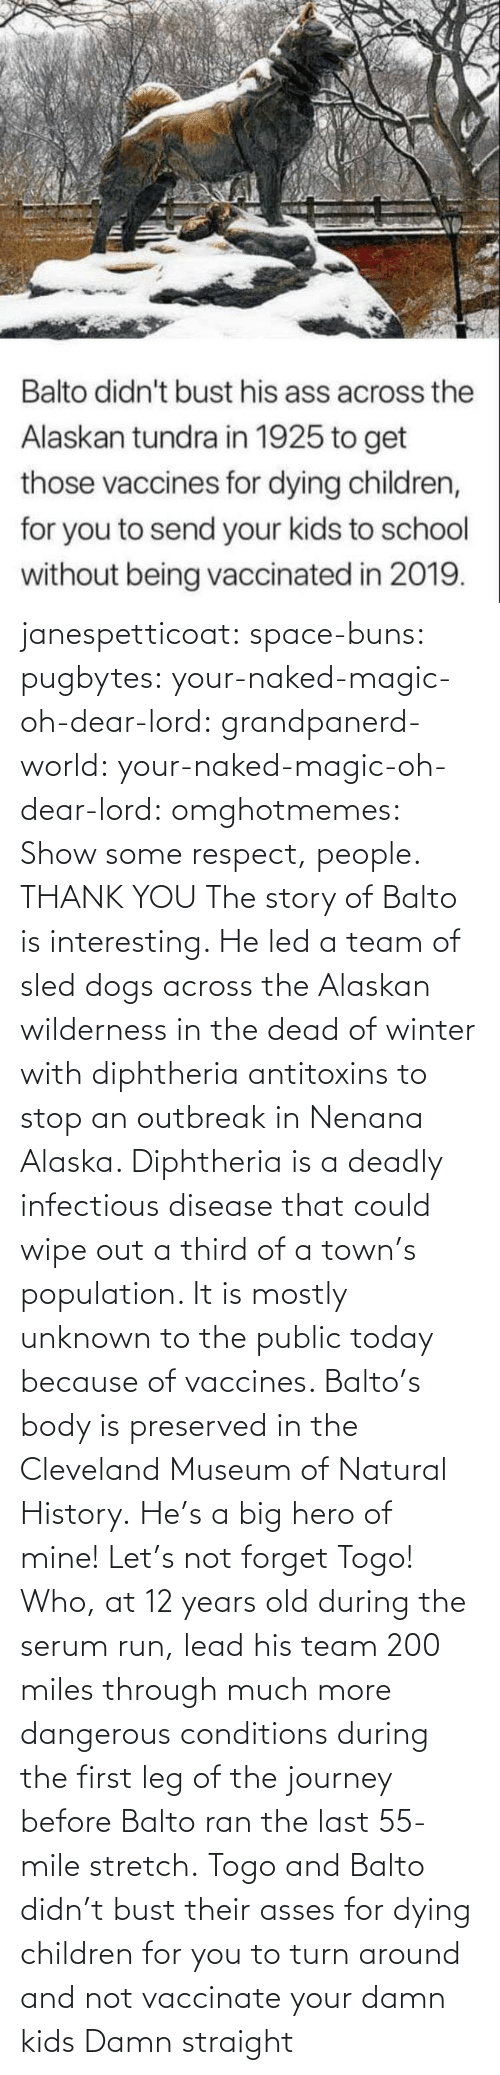 led: janespetticoat: space-buns:  pugbytes:   your-naked-magic-oh-dear-lord:  grandpanerd-world:   your-naked-magic-oh-dear-lord:  omghotmemes: Show some respect, people.  THANK YOU   The story of Balto is interesting. He led a team of sled dogs across the Alaskan wilderness in the dead of winter with diphtheria antitoxins to stop an outbreak in Nenana Alaska. Diphtheria is a deadly infectious disease that could wipe out a third of a town's population. It is mostly unknown to the public today because of vaccines. Balto's body is preserved in the Cleveland Museum of Natural History.   He's a big hero of mine!   Let's not forget Togo! Who, at 12 years old during the serum run, lead his team 200 miles through much more dangerous conditions during the first leg of the journey before Balto ran the last 55-mile stretch.   Togo and Balto didn't bust their asses for dying children for you to turn around and not vaccinate your damn kids    Damn straight